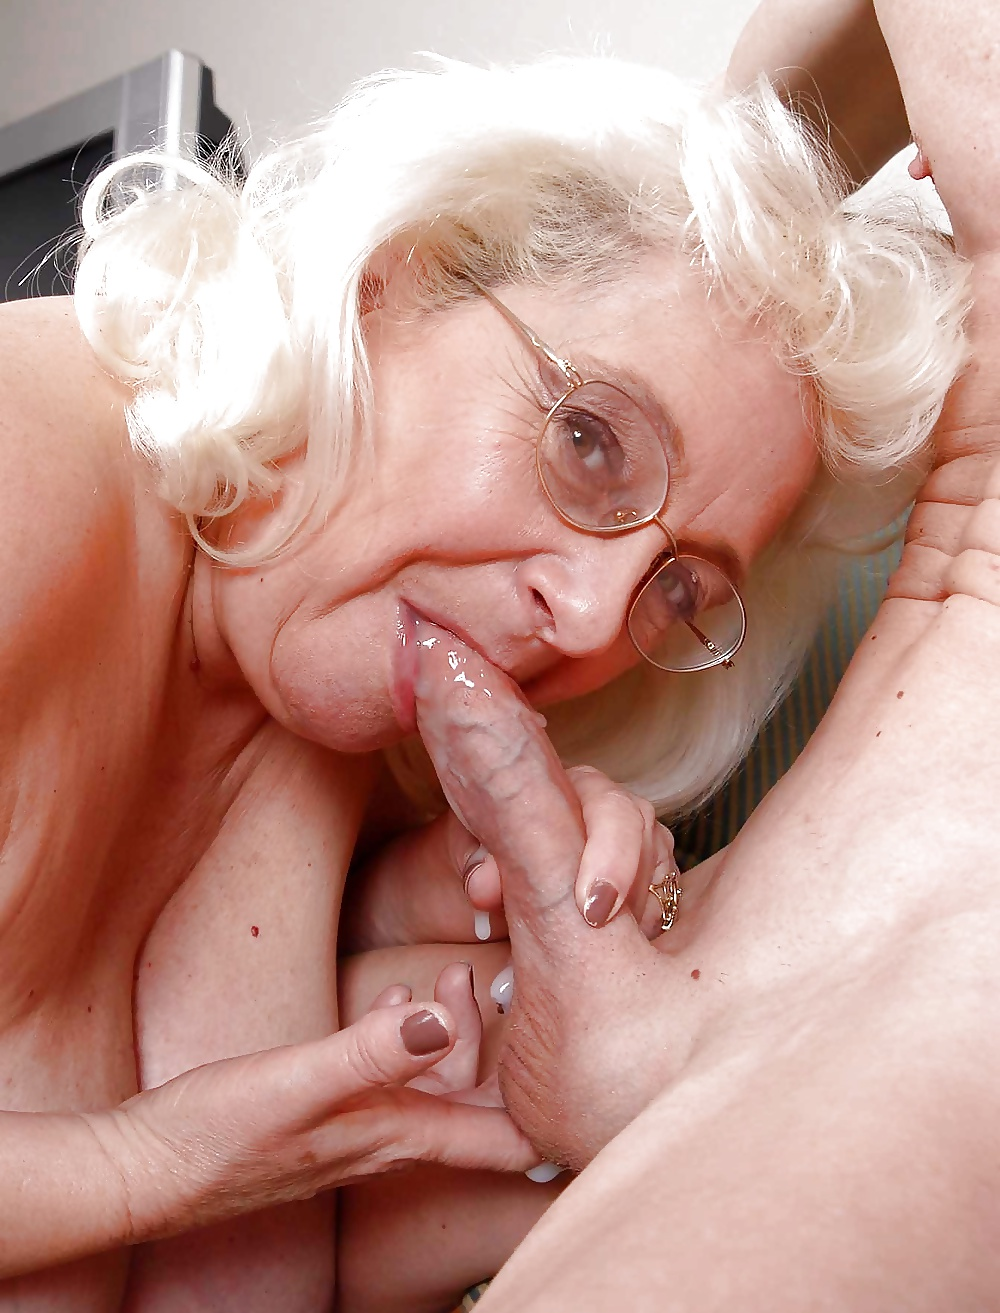 Old grannies sucking young cock, best amateur sex website